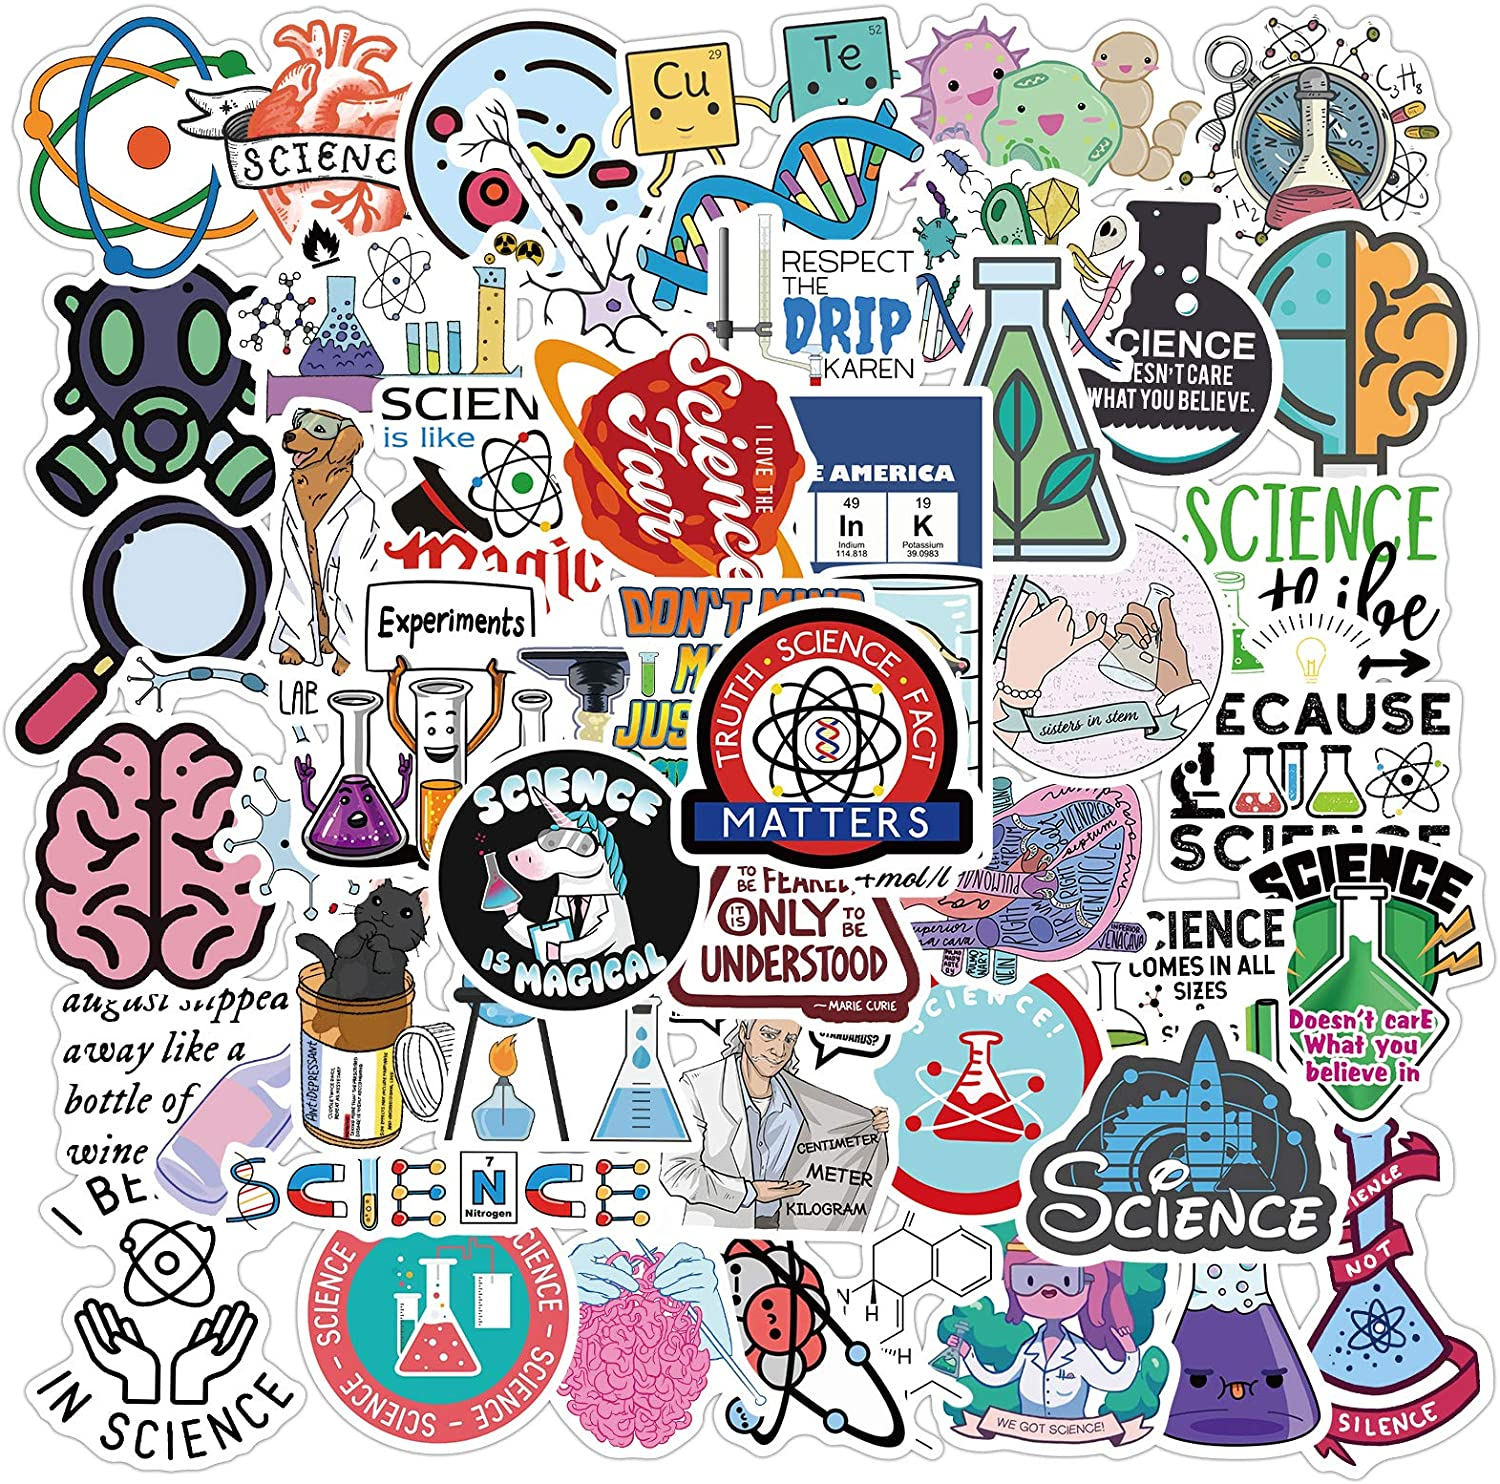 Science Stickers 50 Pack Decals for Laptop Skateboard Water Bottles Car Biology Physics Chemistry Lab Student Science Laboratory Sticker